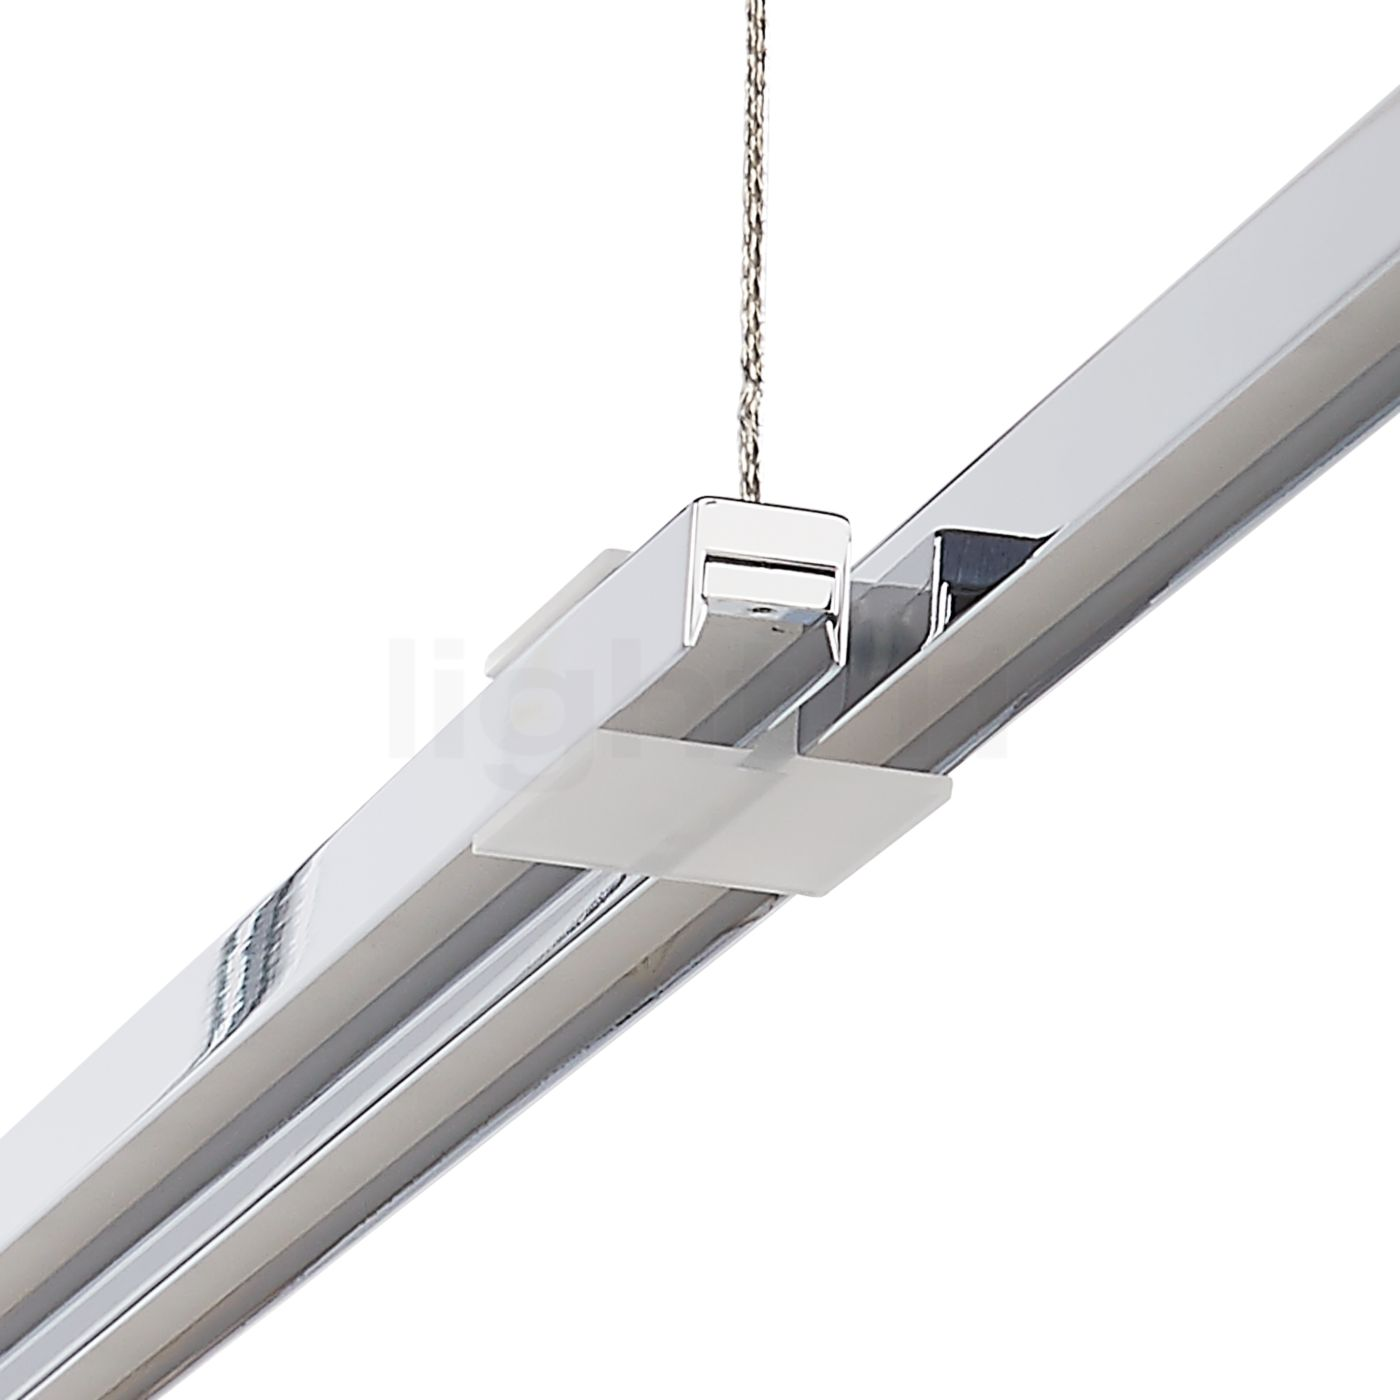 Led Licht Buy Steng Licht Prolong Led At Light11 Eu